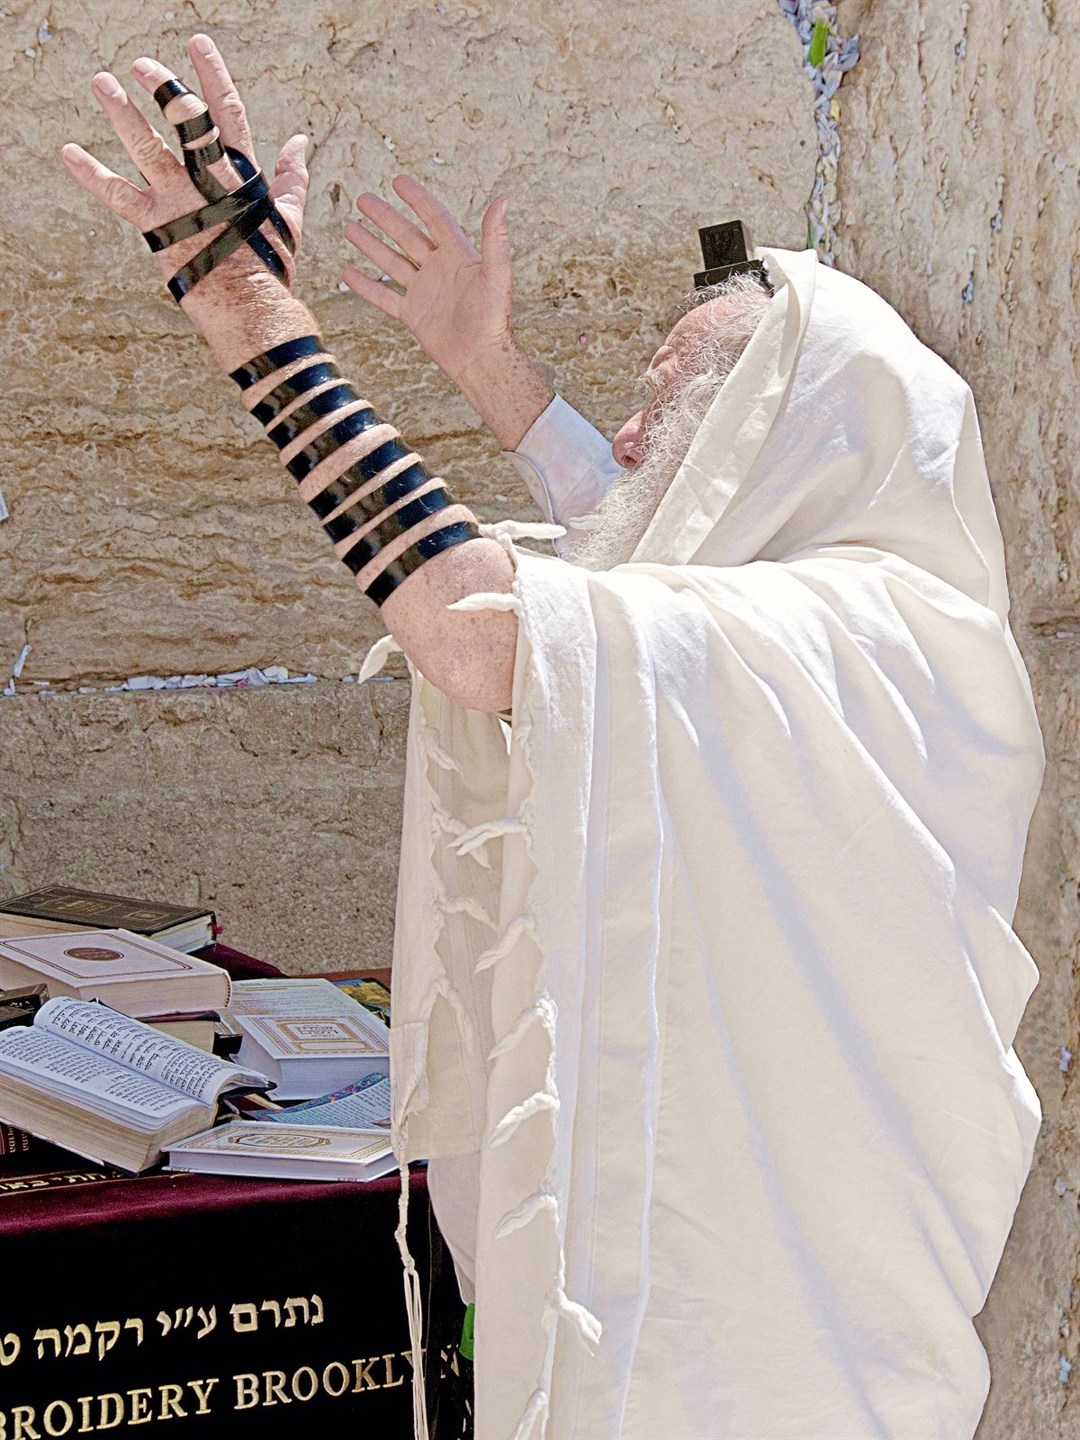 A Jewish man prays at the Western (Wailing) Wall in Jerusalem.